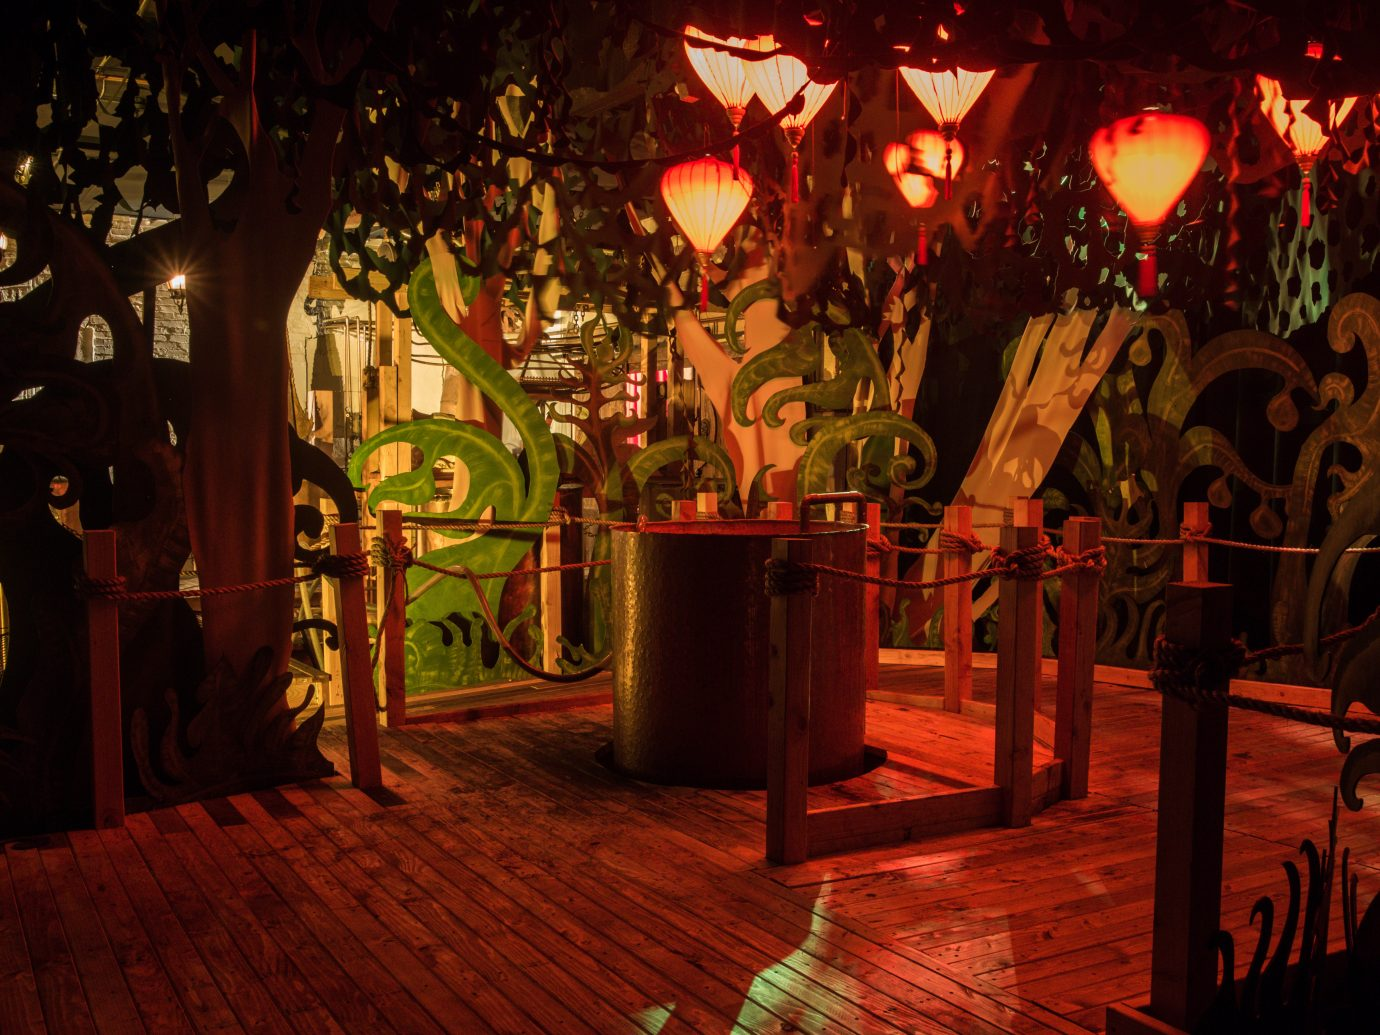 red lit forrest looking room at Lost Spirits Distillery